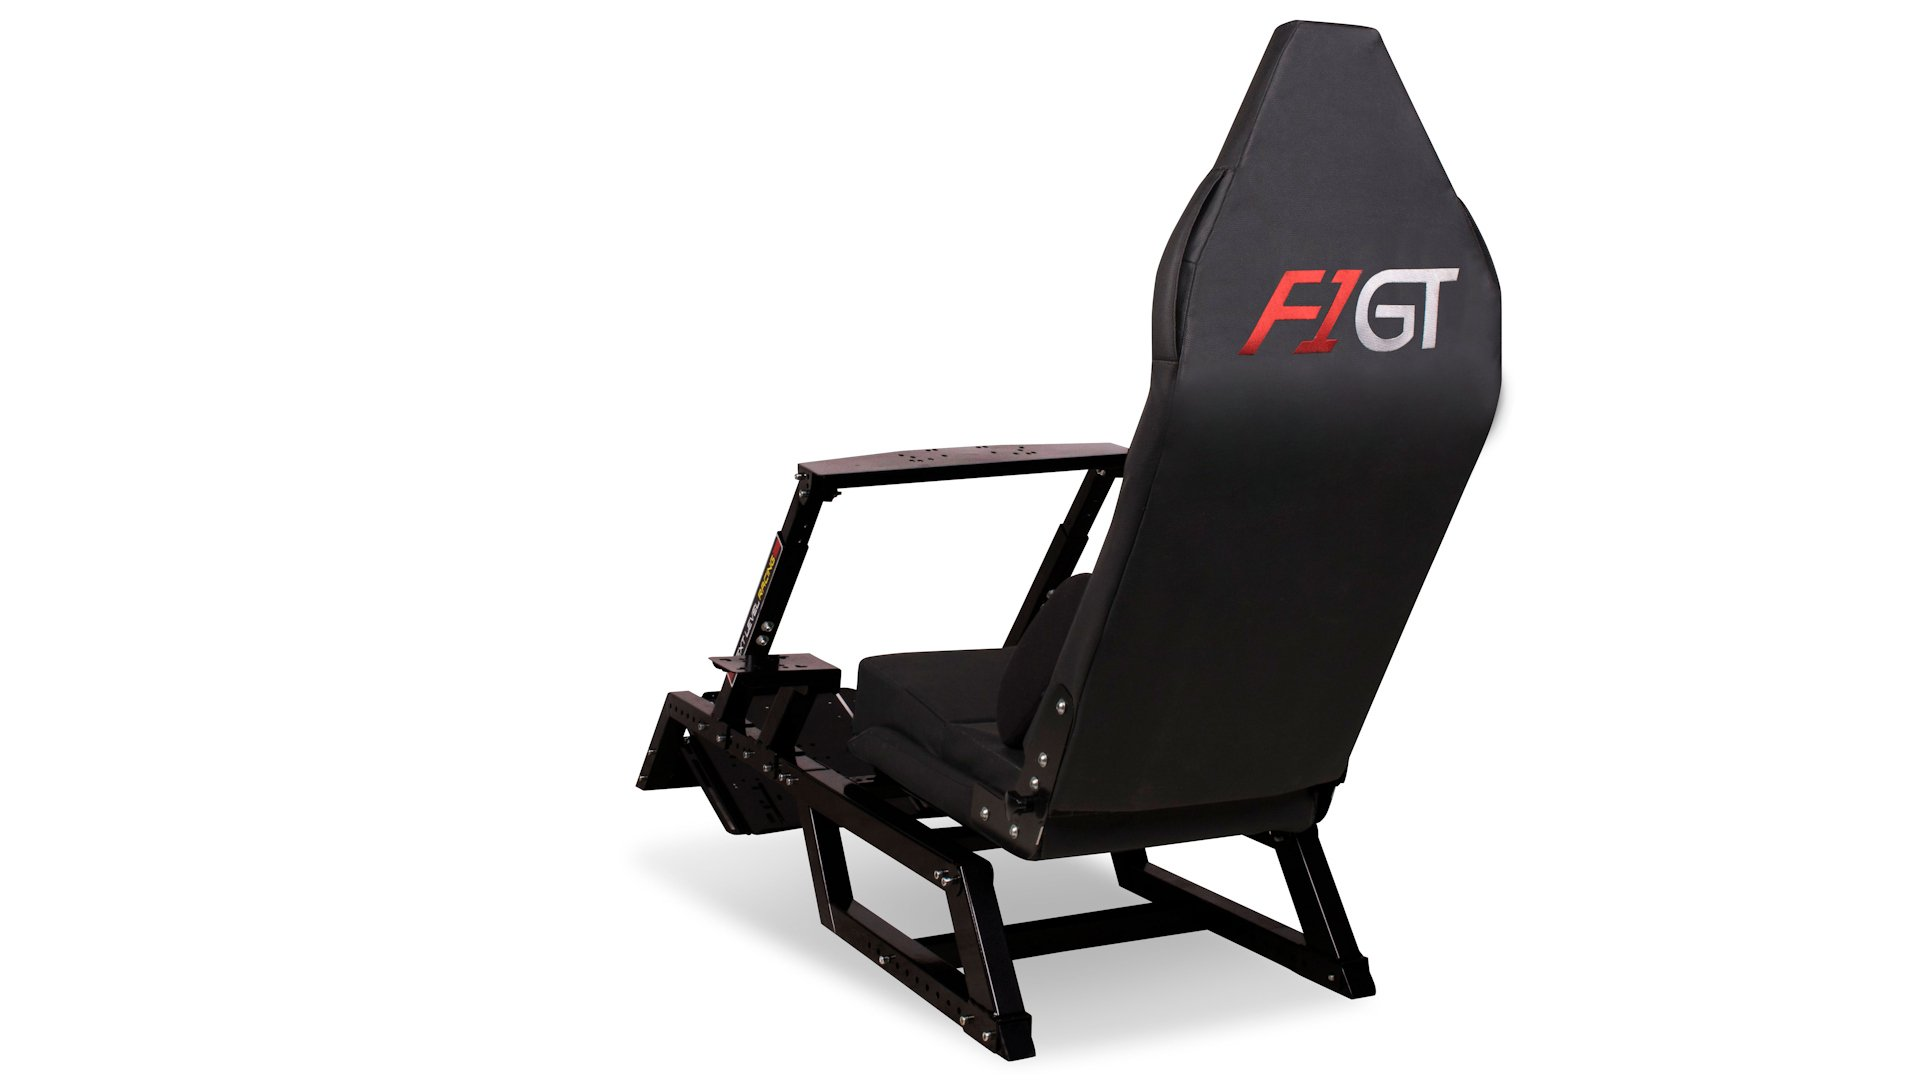 next-level-racing-f1gt-simulator-6